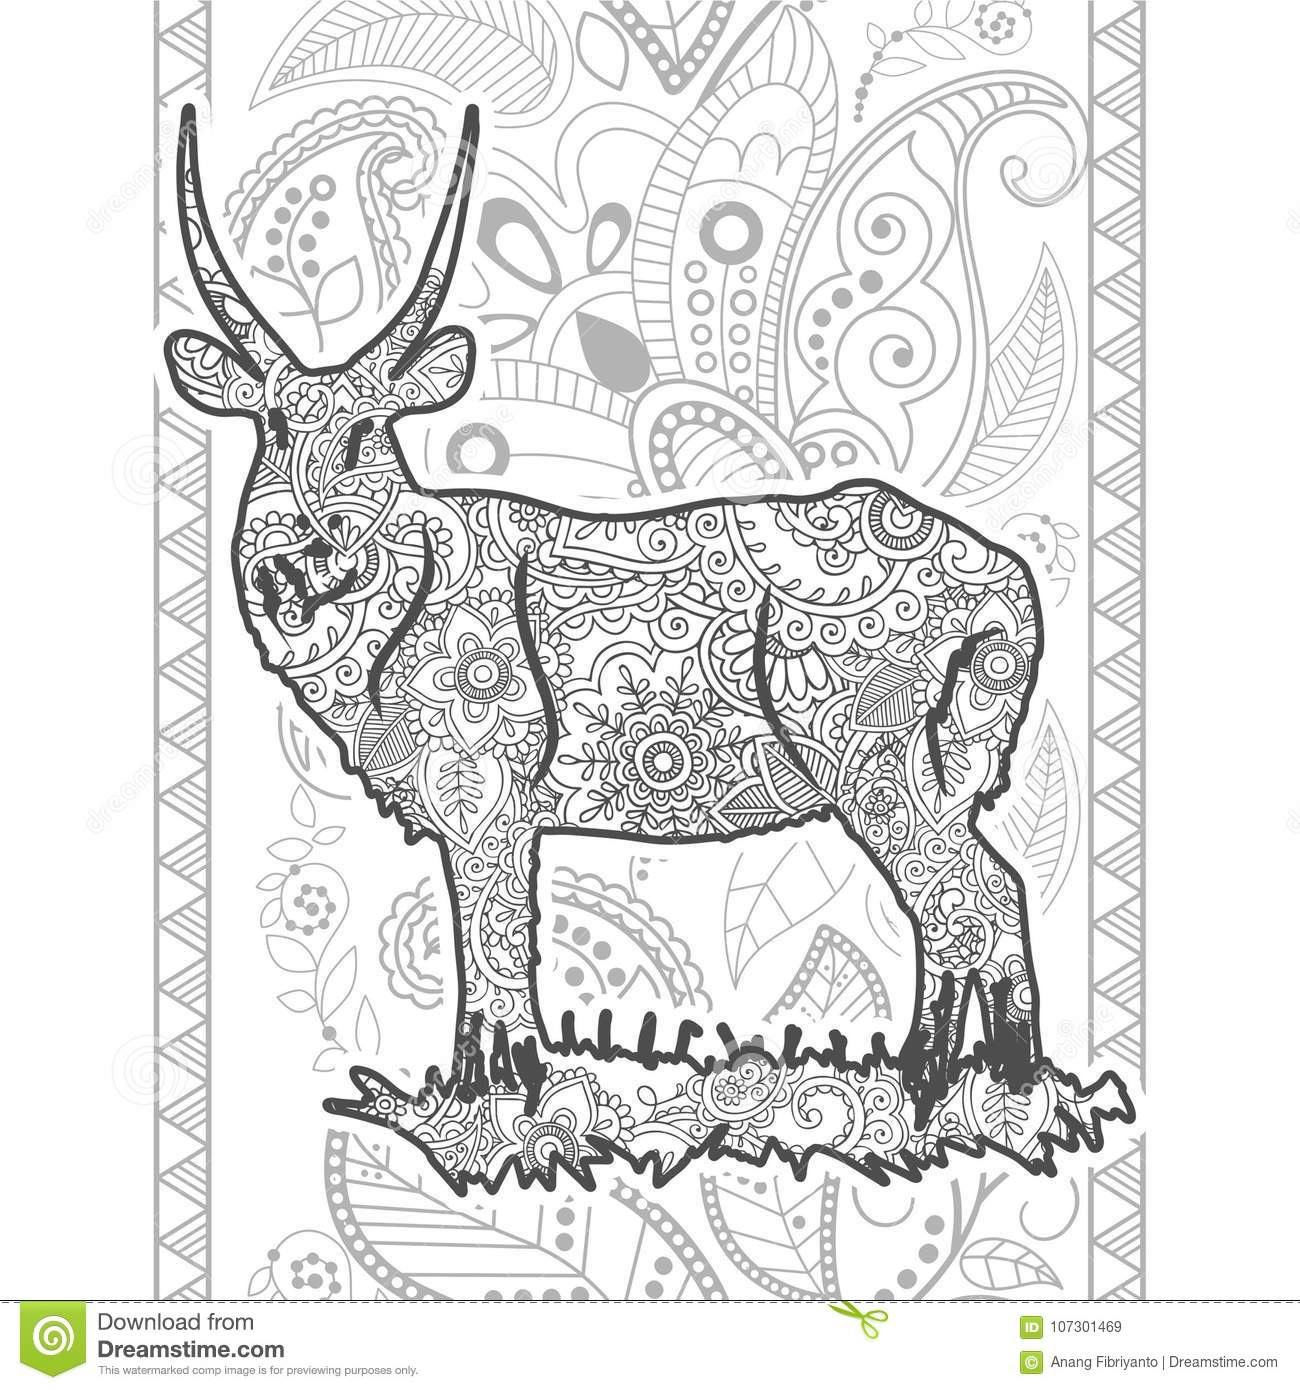 Hand Drawn Doodle Animal Paisley Adult Stress Release